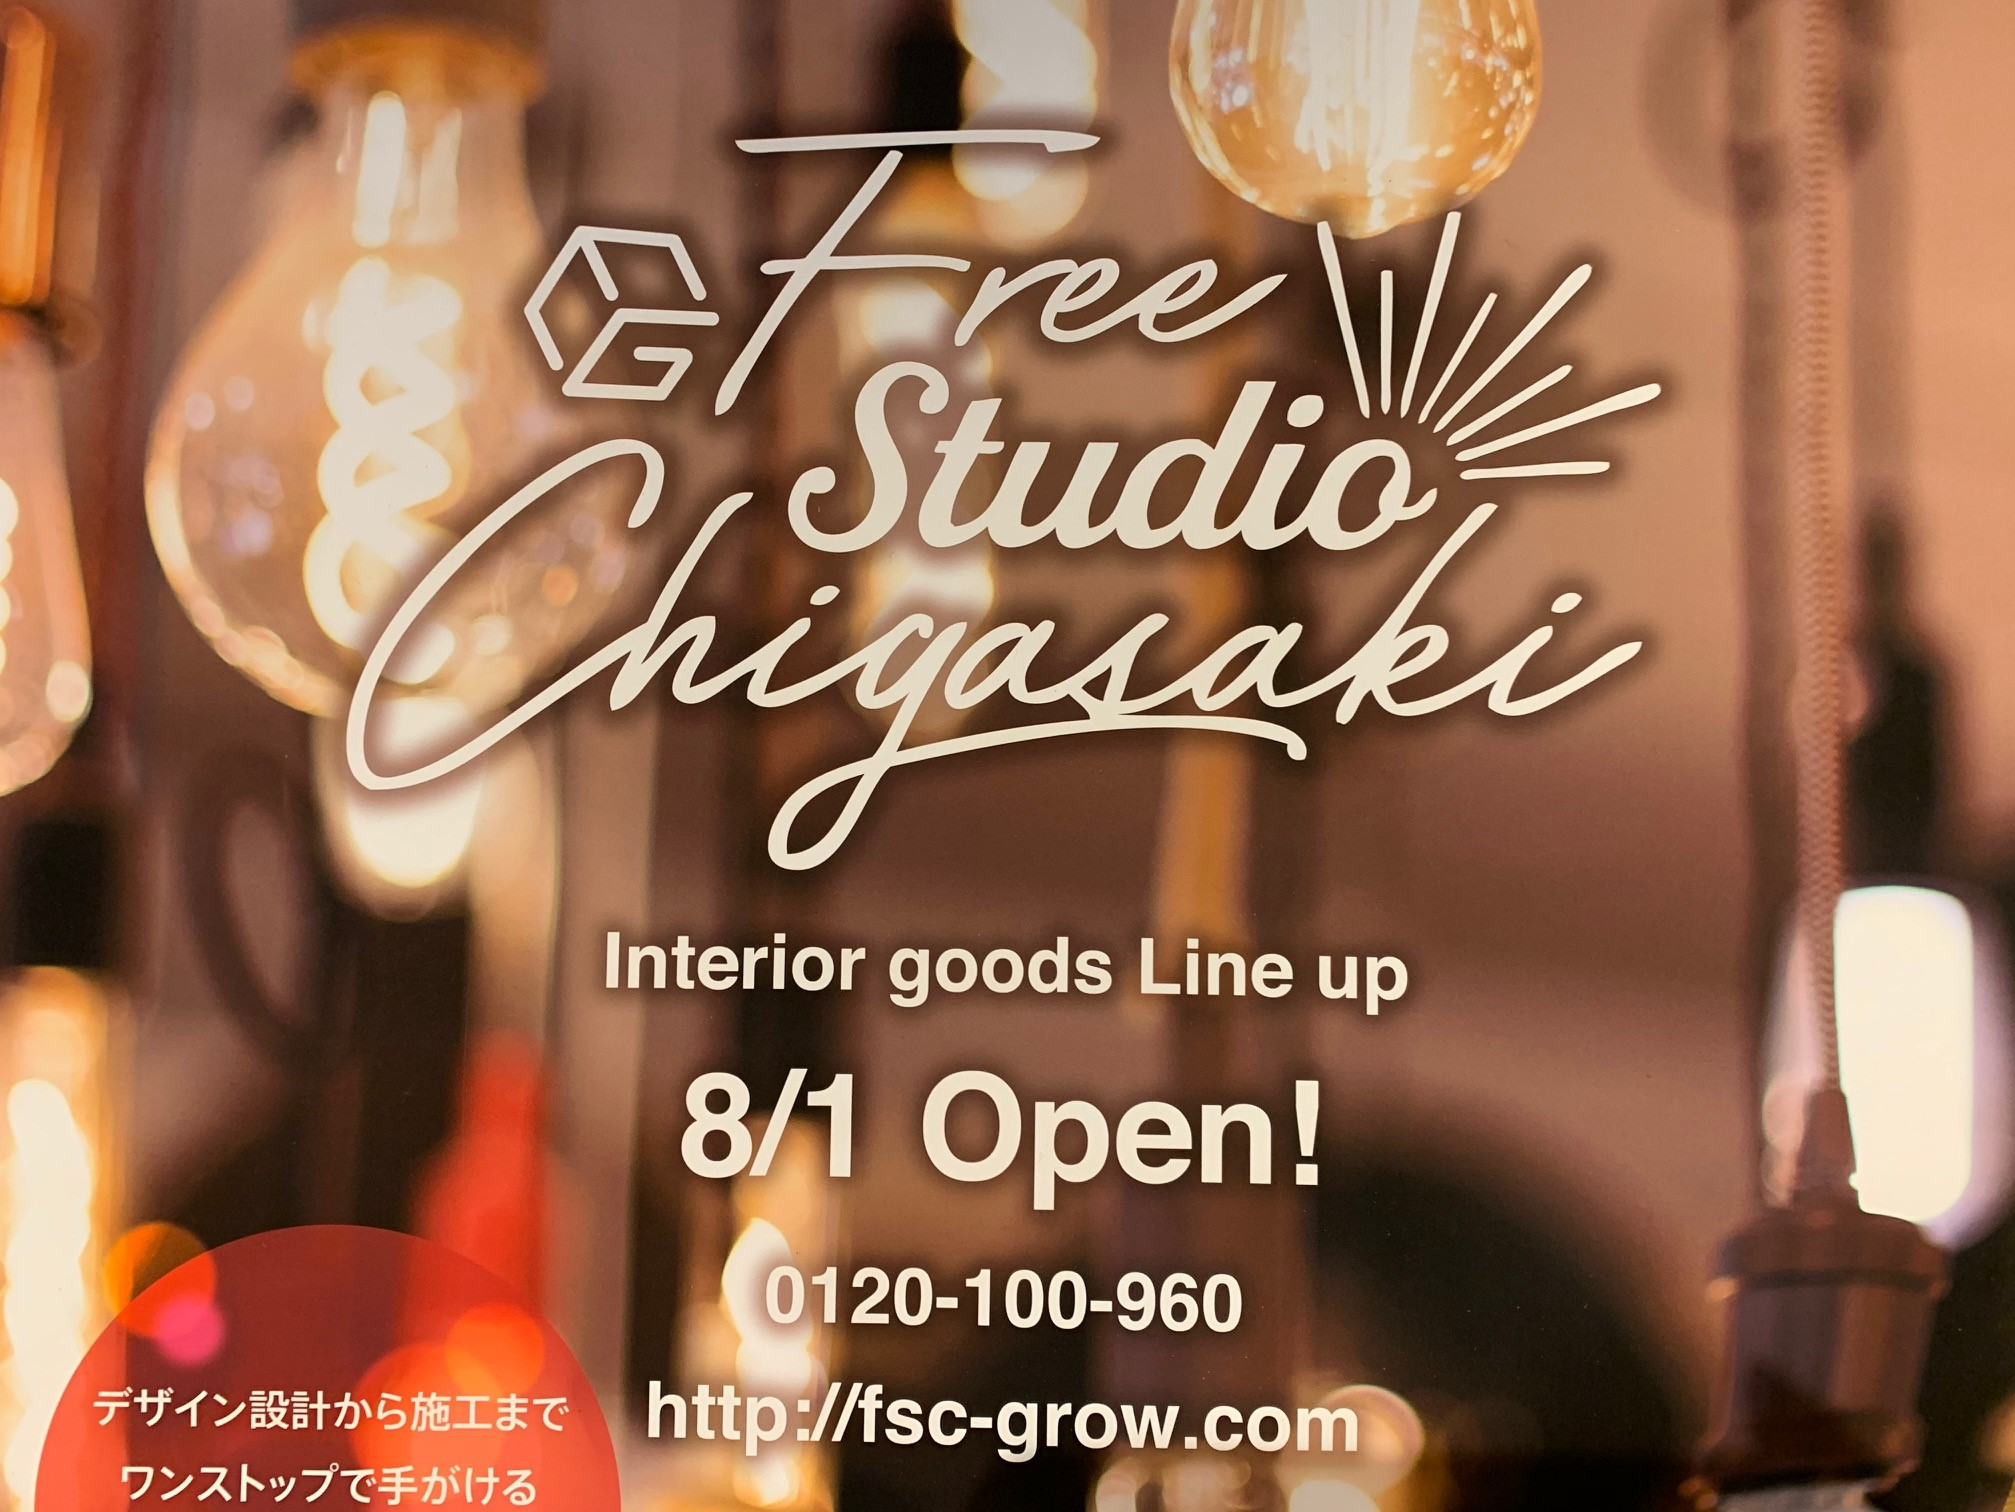 Fee studio chigasakiグロウ茅ケ崎